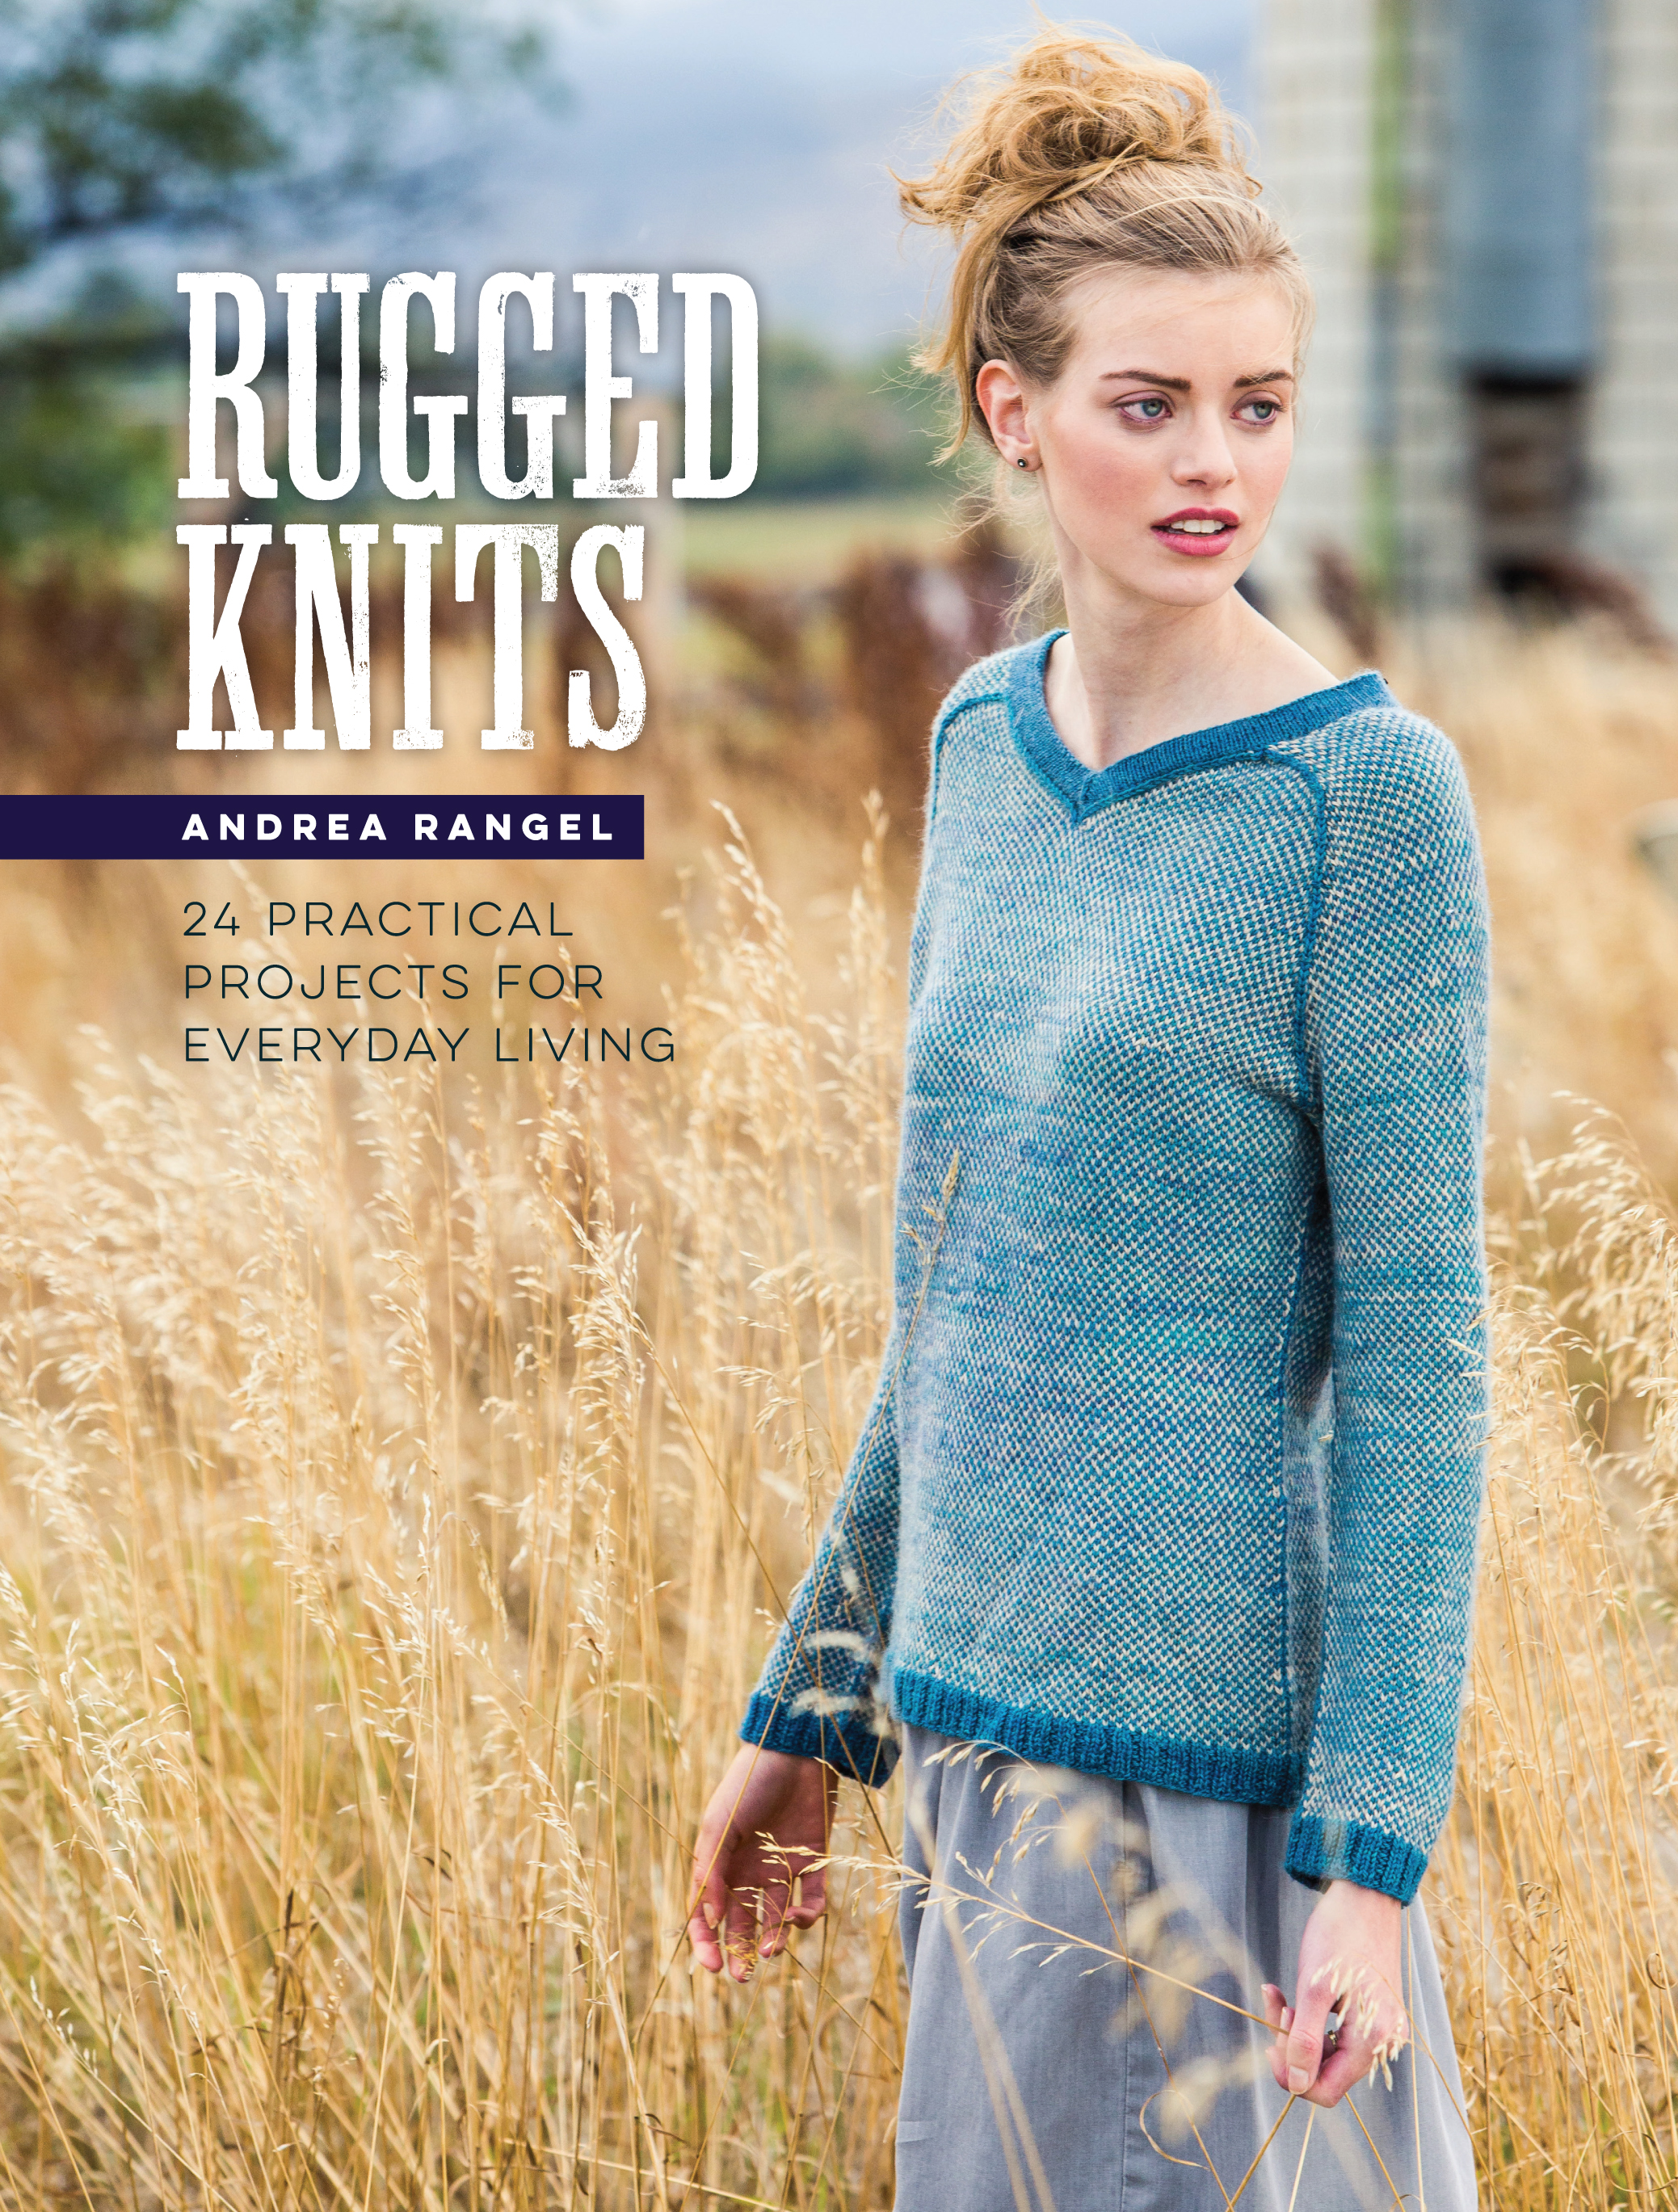 Rugged Knits by Andrea Rangel Book Review & Giveaway on Veryshannon.com